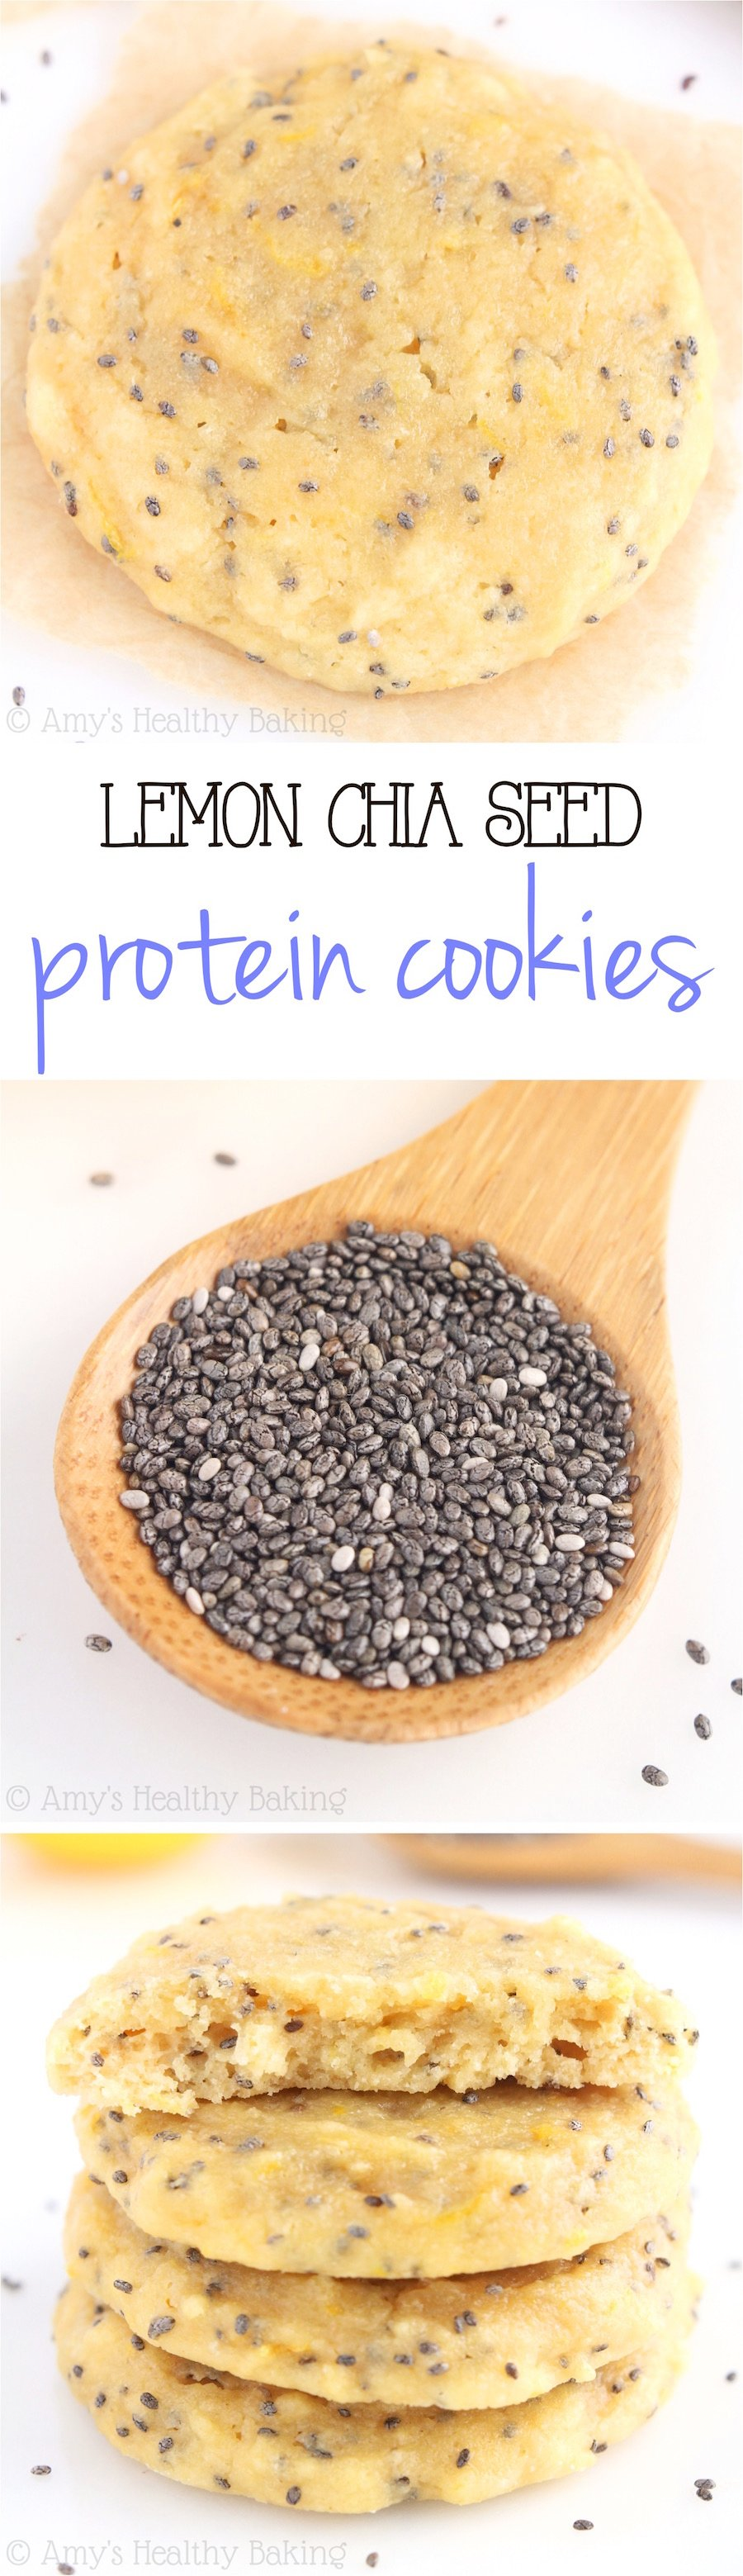 Lemon Chia Seed Protein Cookies -- these skinny, protein-packed cookies don't taste healthy at all! Even better, they're low carb & 100% acceptable for breakfast!